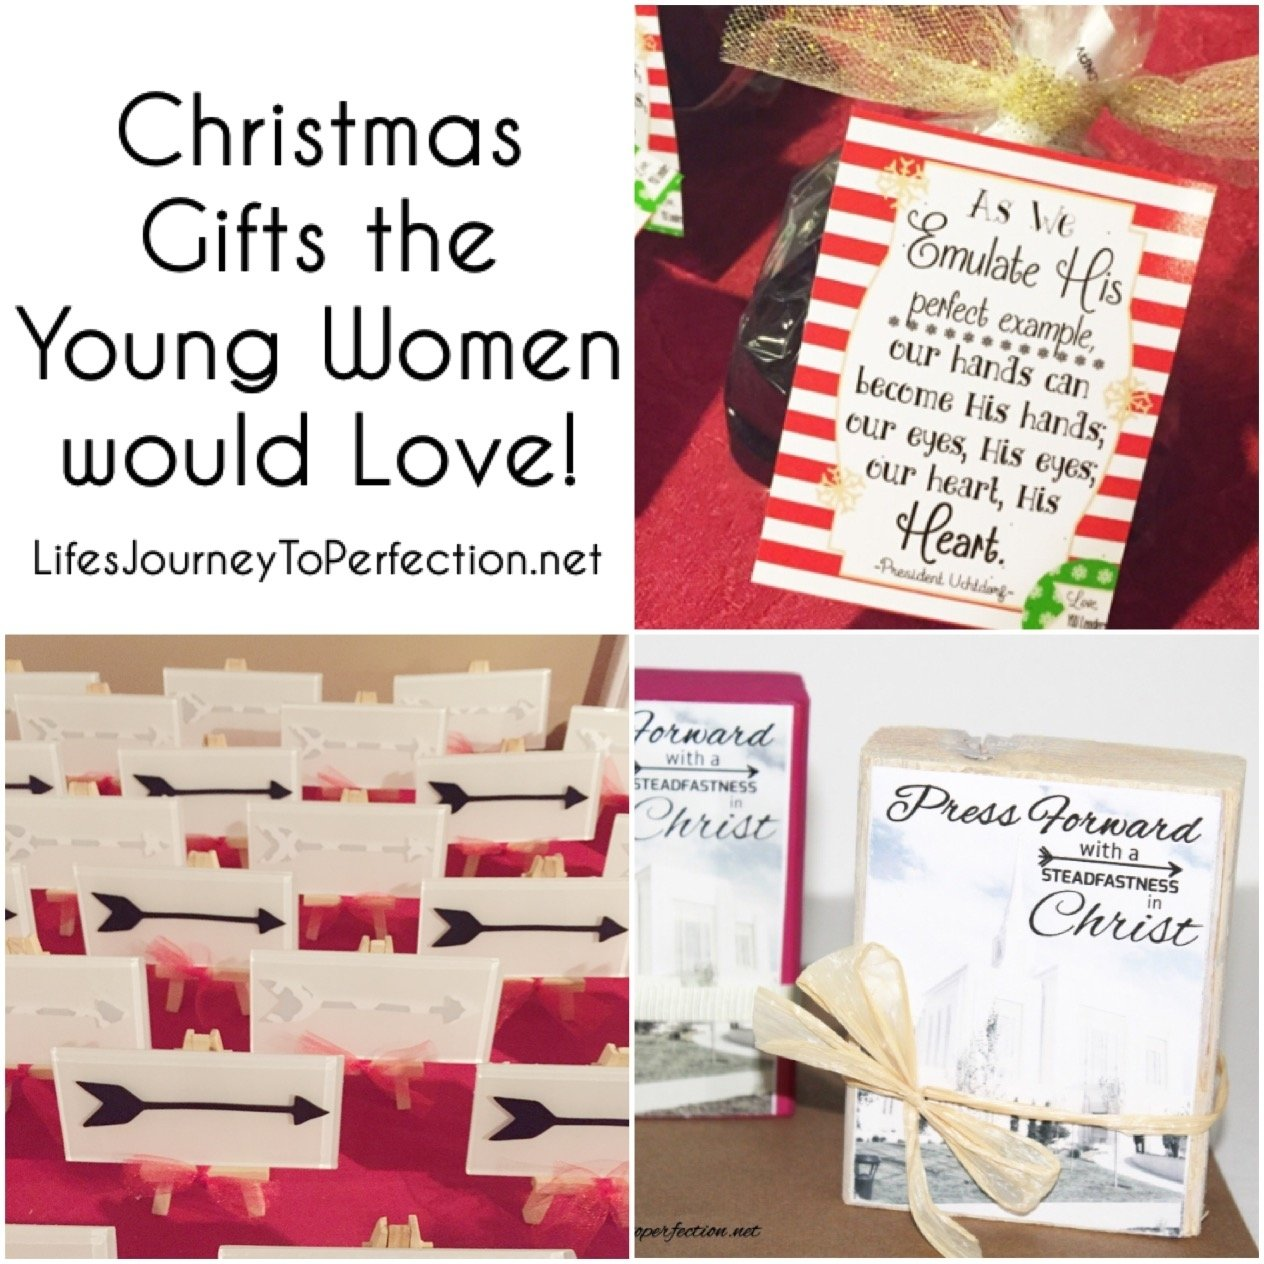 life's journey to perfection: christmas gifts the young women will love!